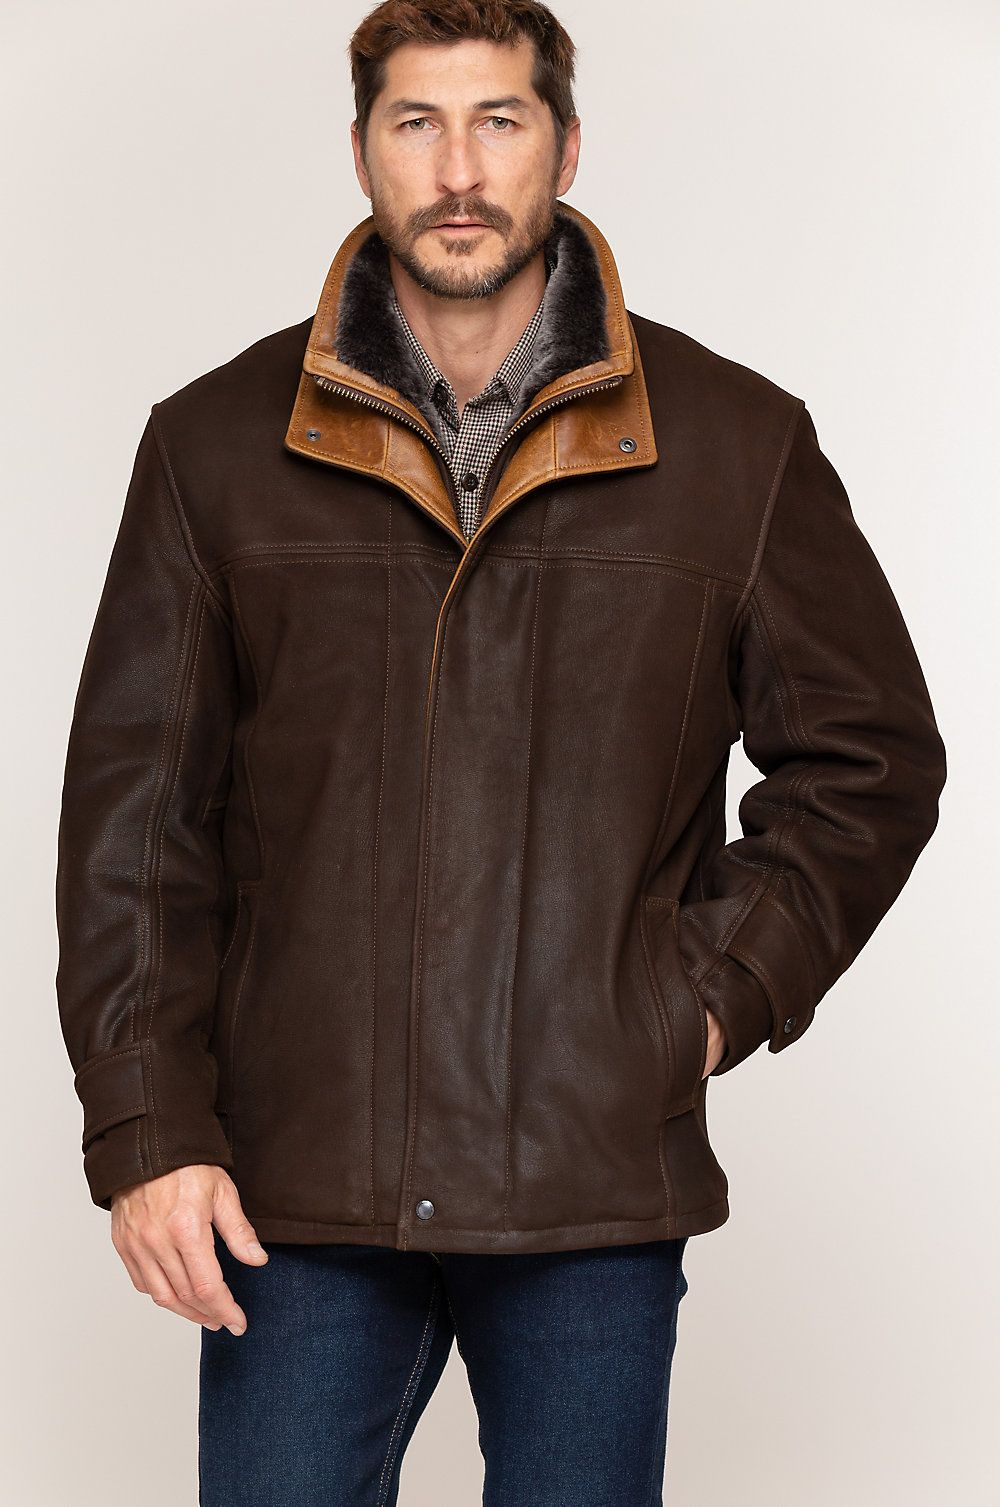 Jack Frost Leather Coat With Spanish Merino Shearling Lining Big Tall 48l 52l In 2021 Leather Coat Mens Leather Coats Sheepskin Coat Mens [ 1507 x 1000 Pixel ]